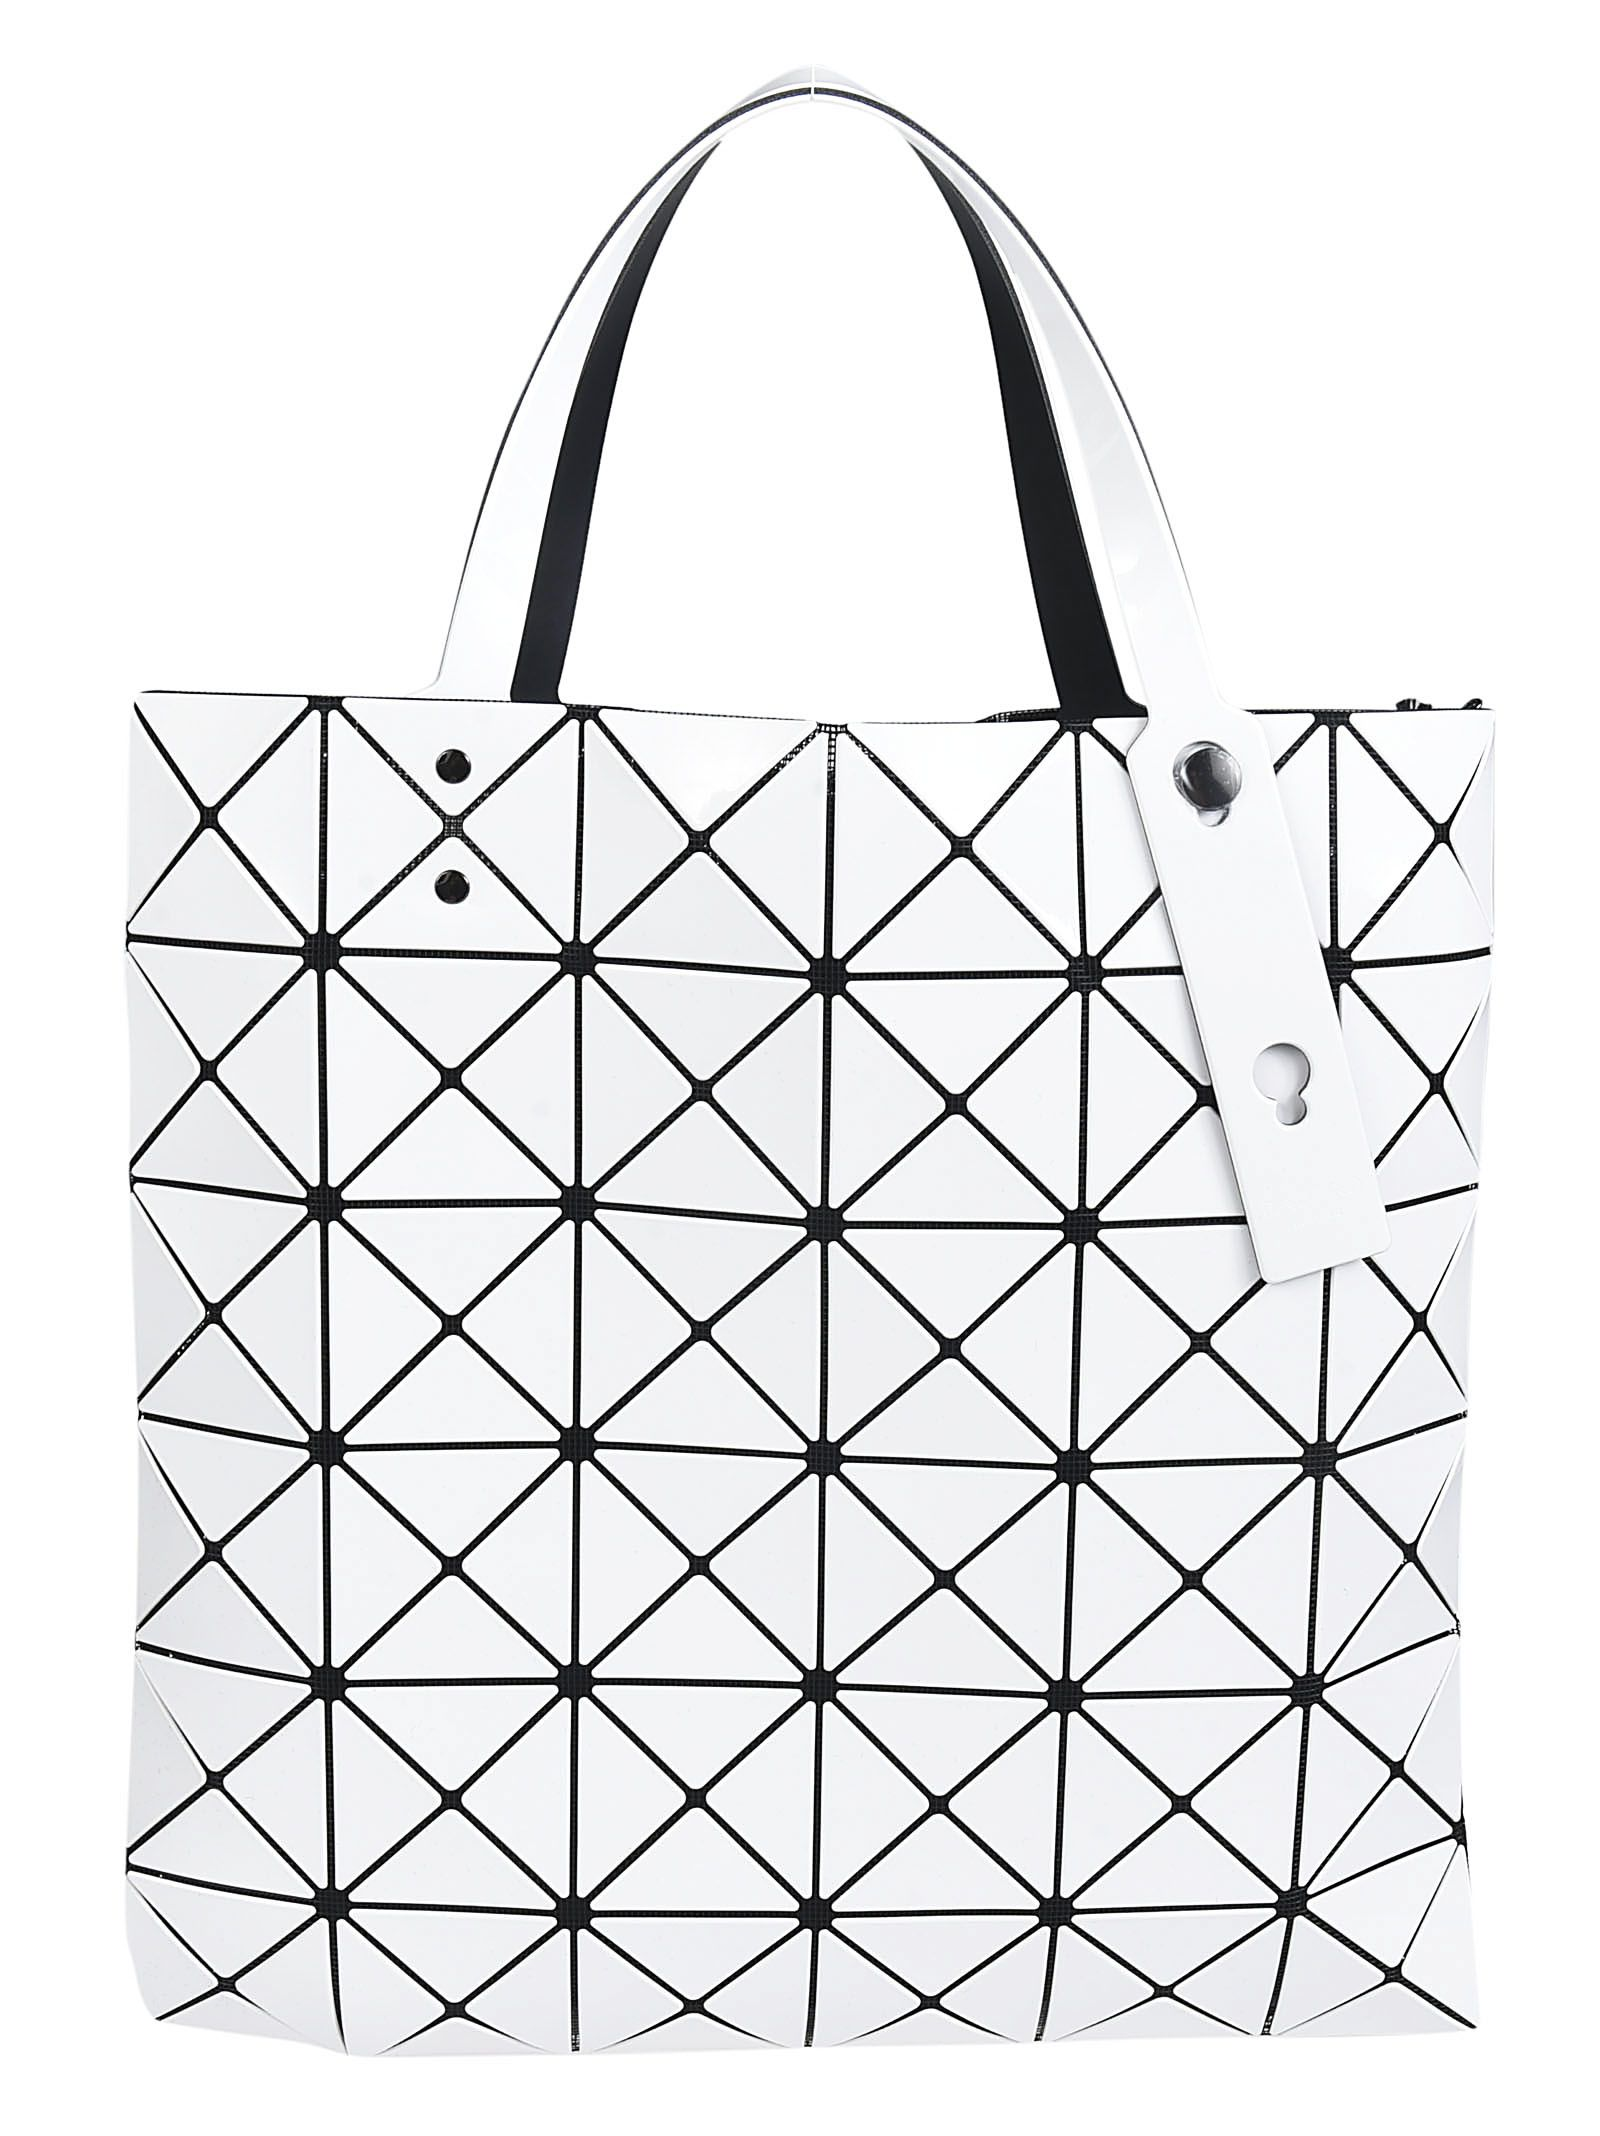 Issey Miyake Lucent Shopper Bag